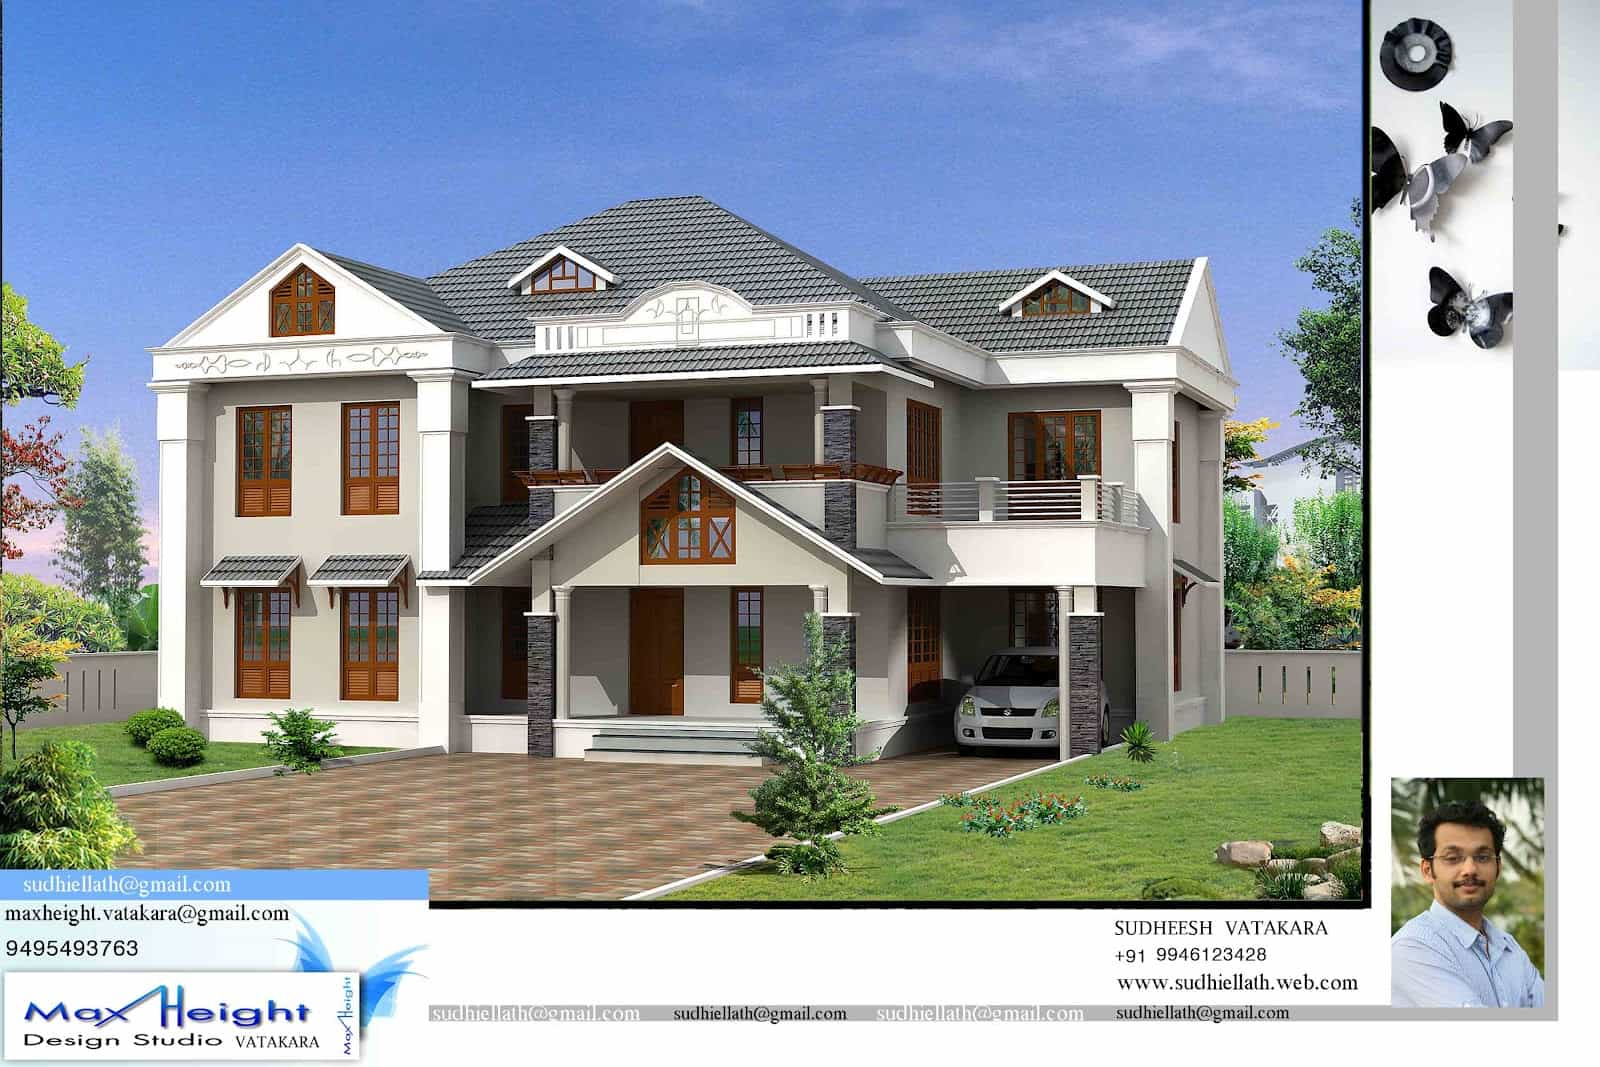 kerala house model latest Kerala house model Latest Kerala style home ...